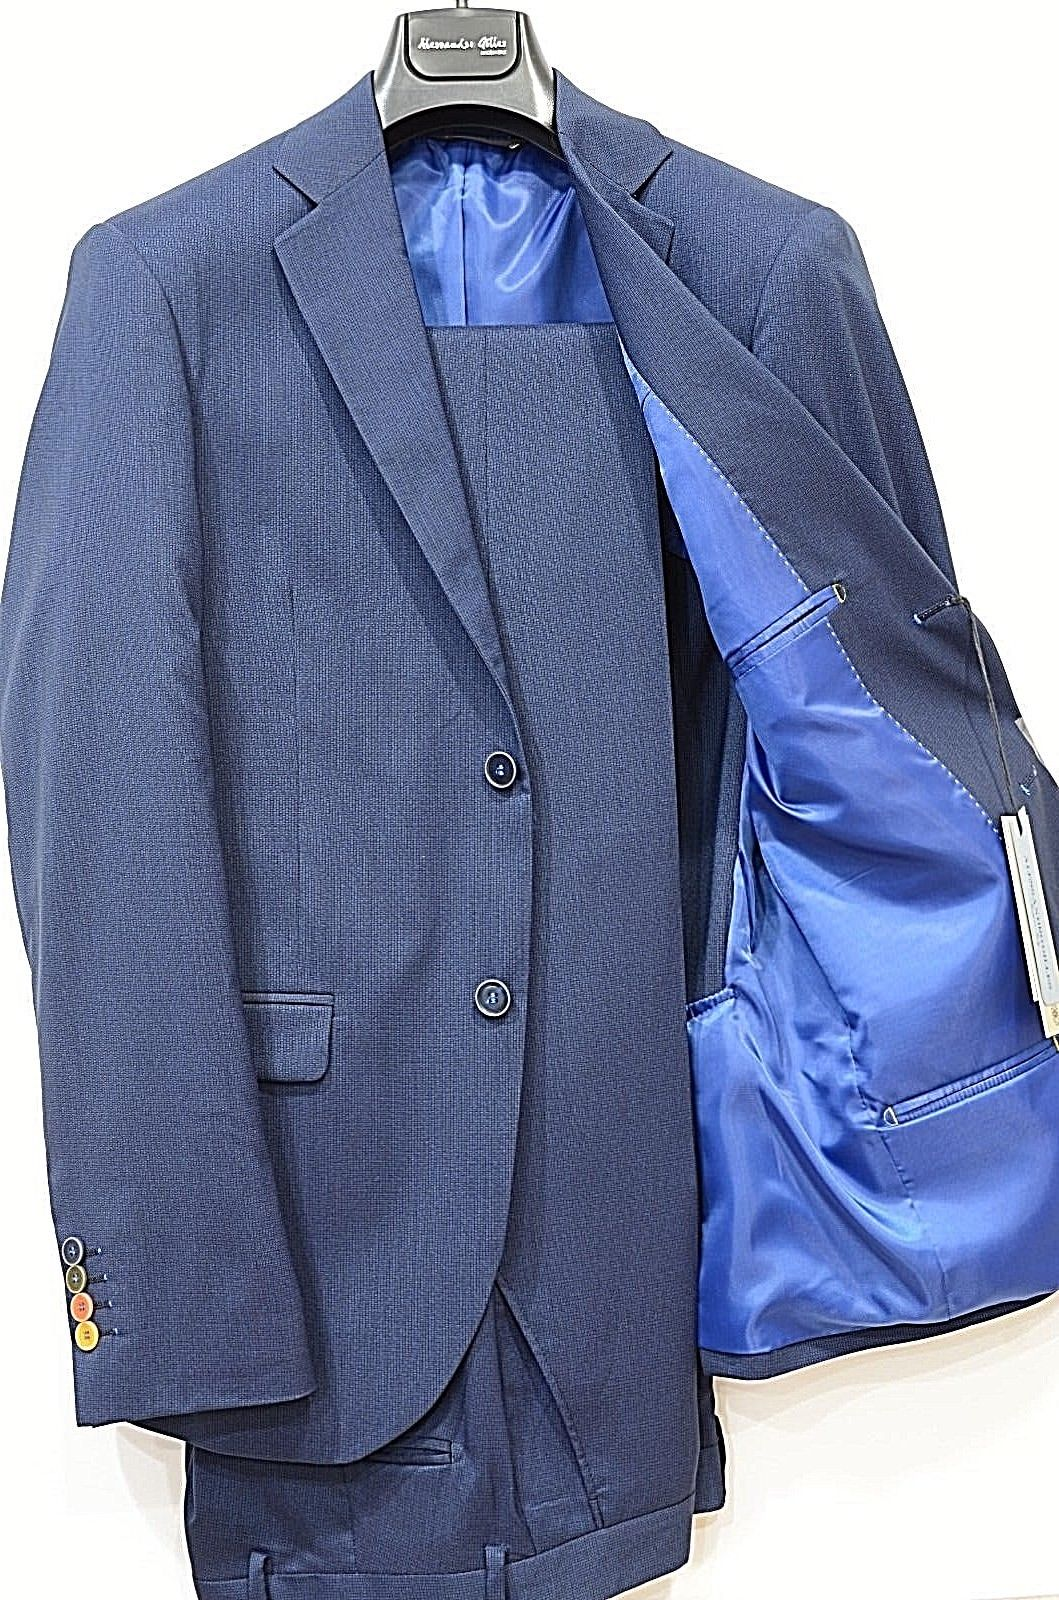 ALESSANDRO GILLES ABITO UOMO SLIM FIT MADE IN ITALY ART. A22C 0150 BLU MICROFANT